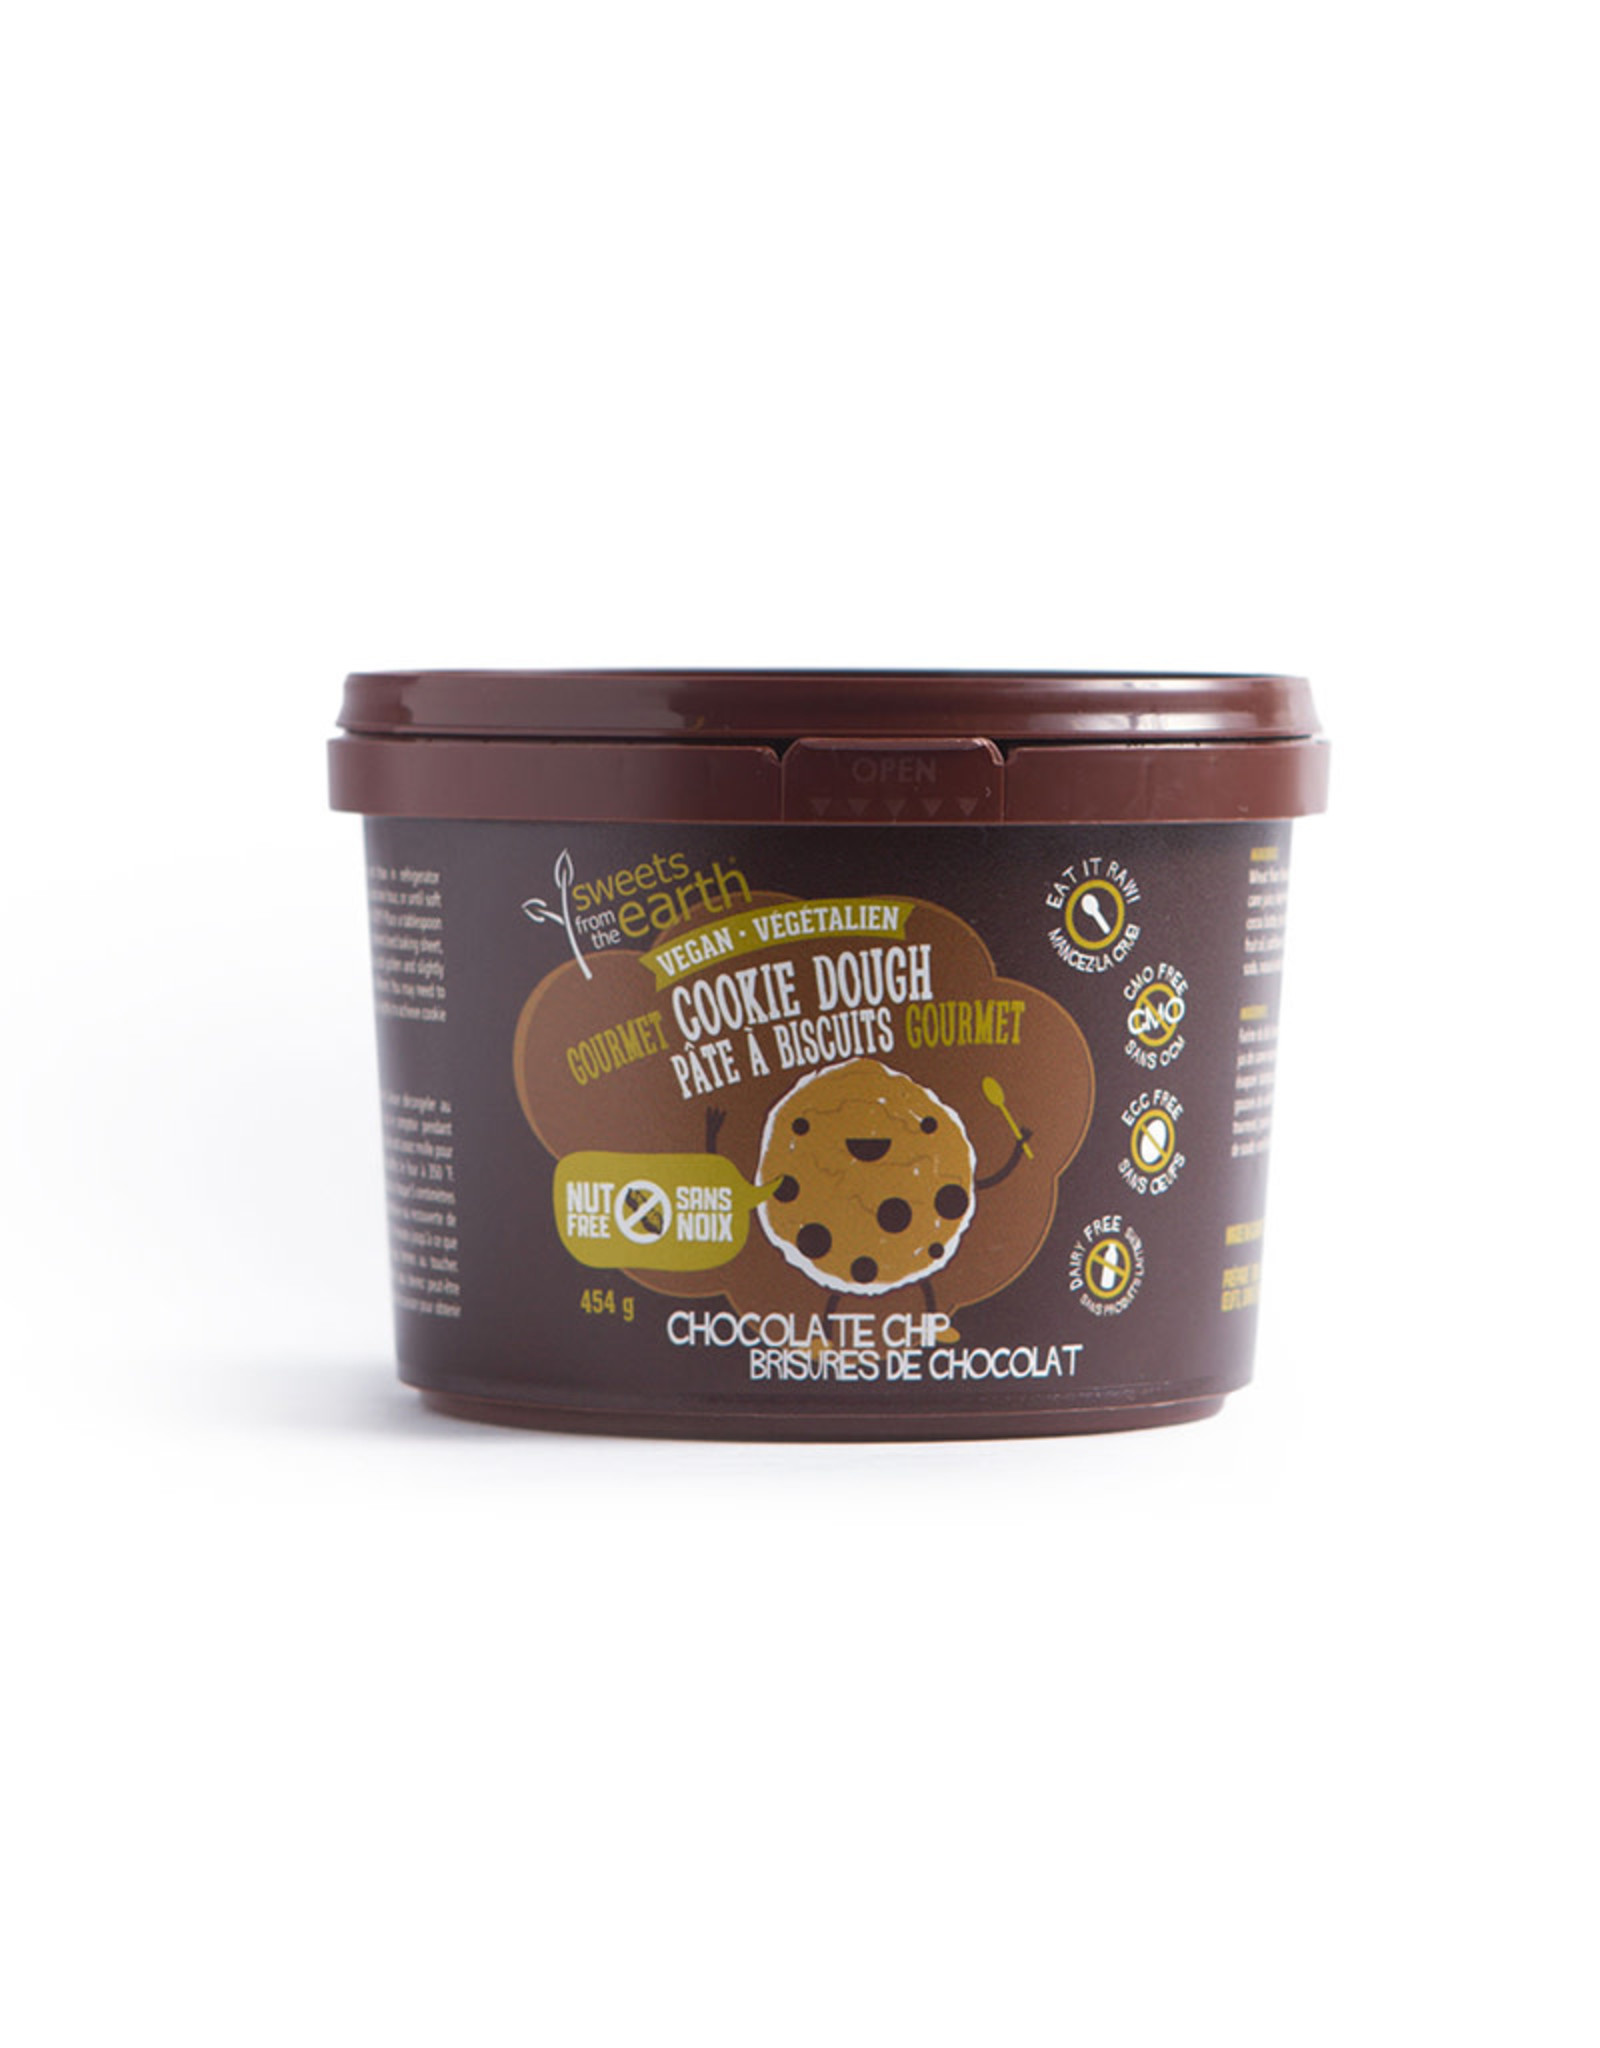 Sweets From the Earth Sweets from the Earth - Chocolate Chip Cookie Dough (454g)